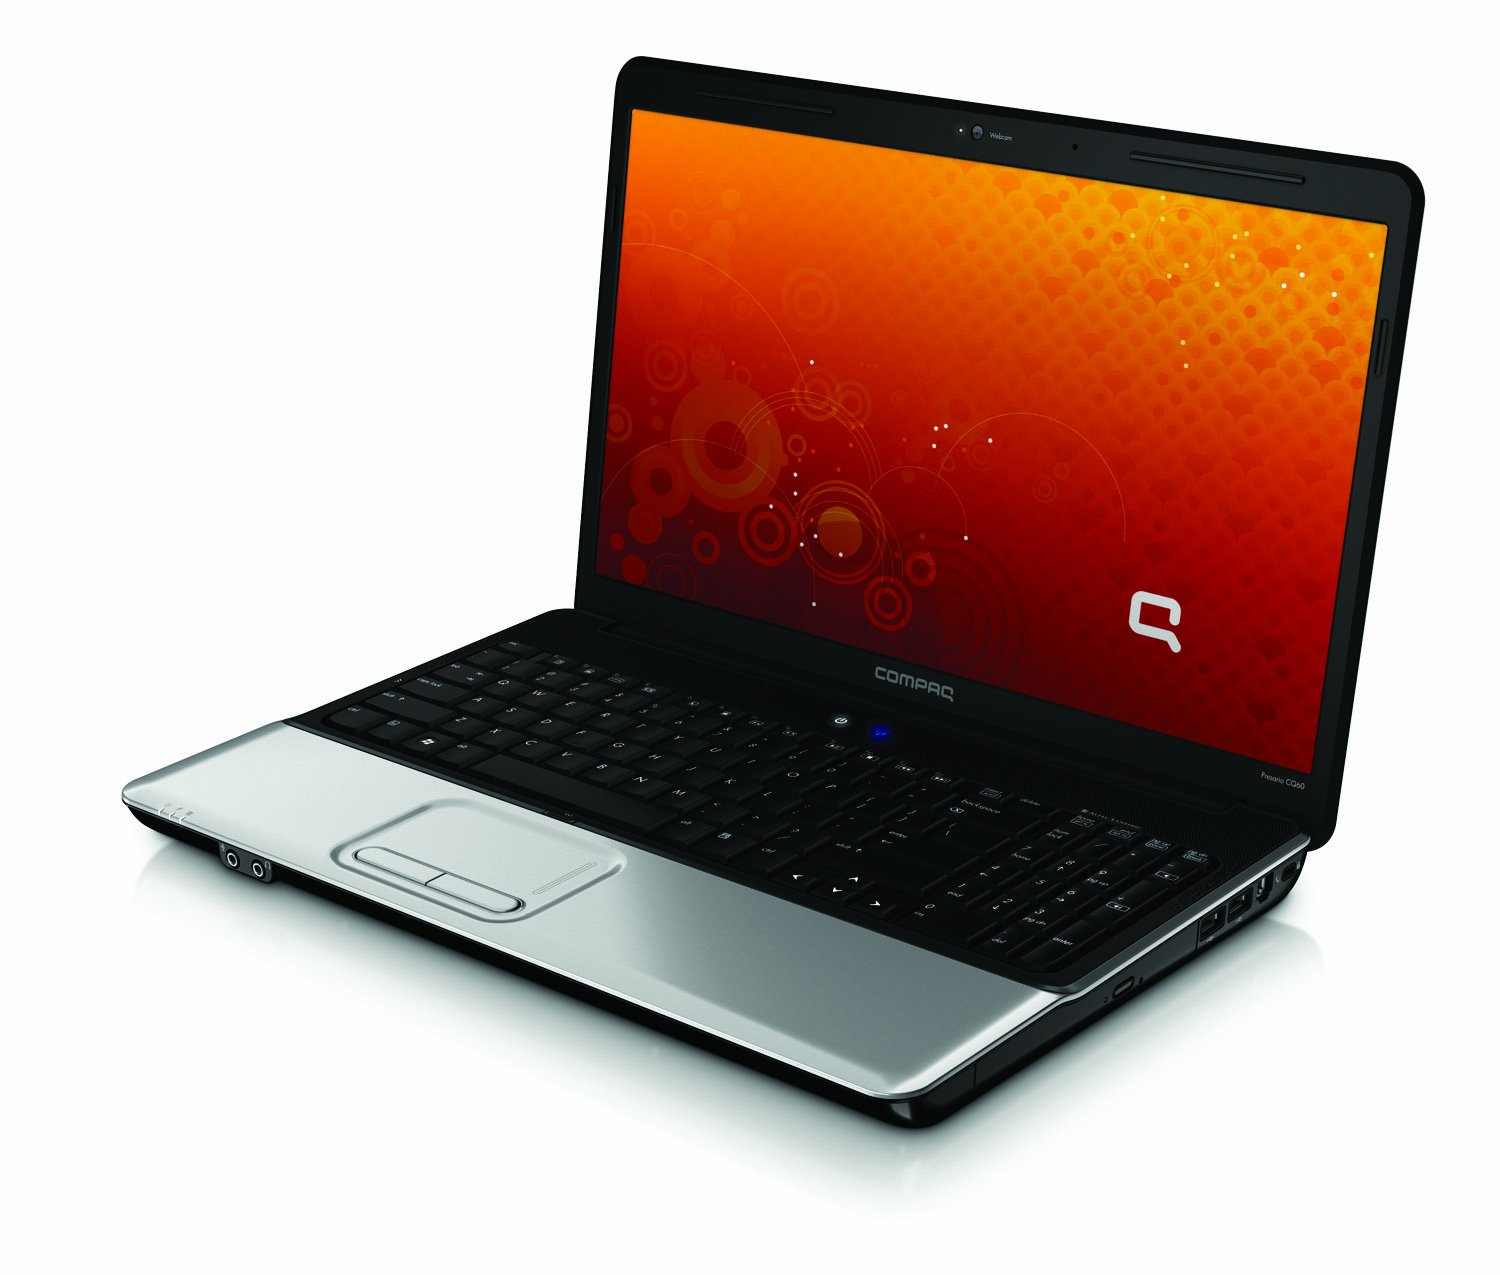 presario cq50 service manual free owners manual u2022 rh wordworksbysea com compaq presario 1200 laptop manual compaq presario 2100 laptop manual